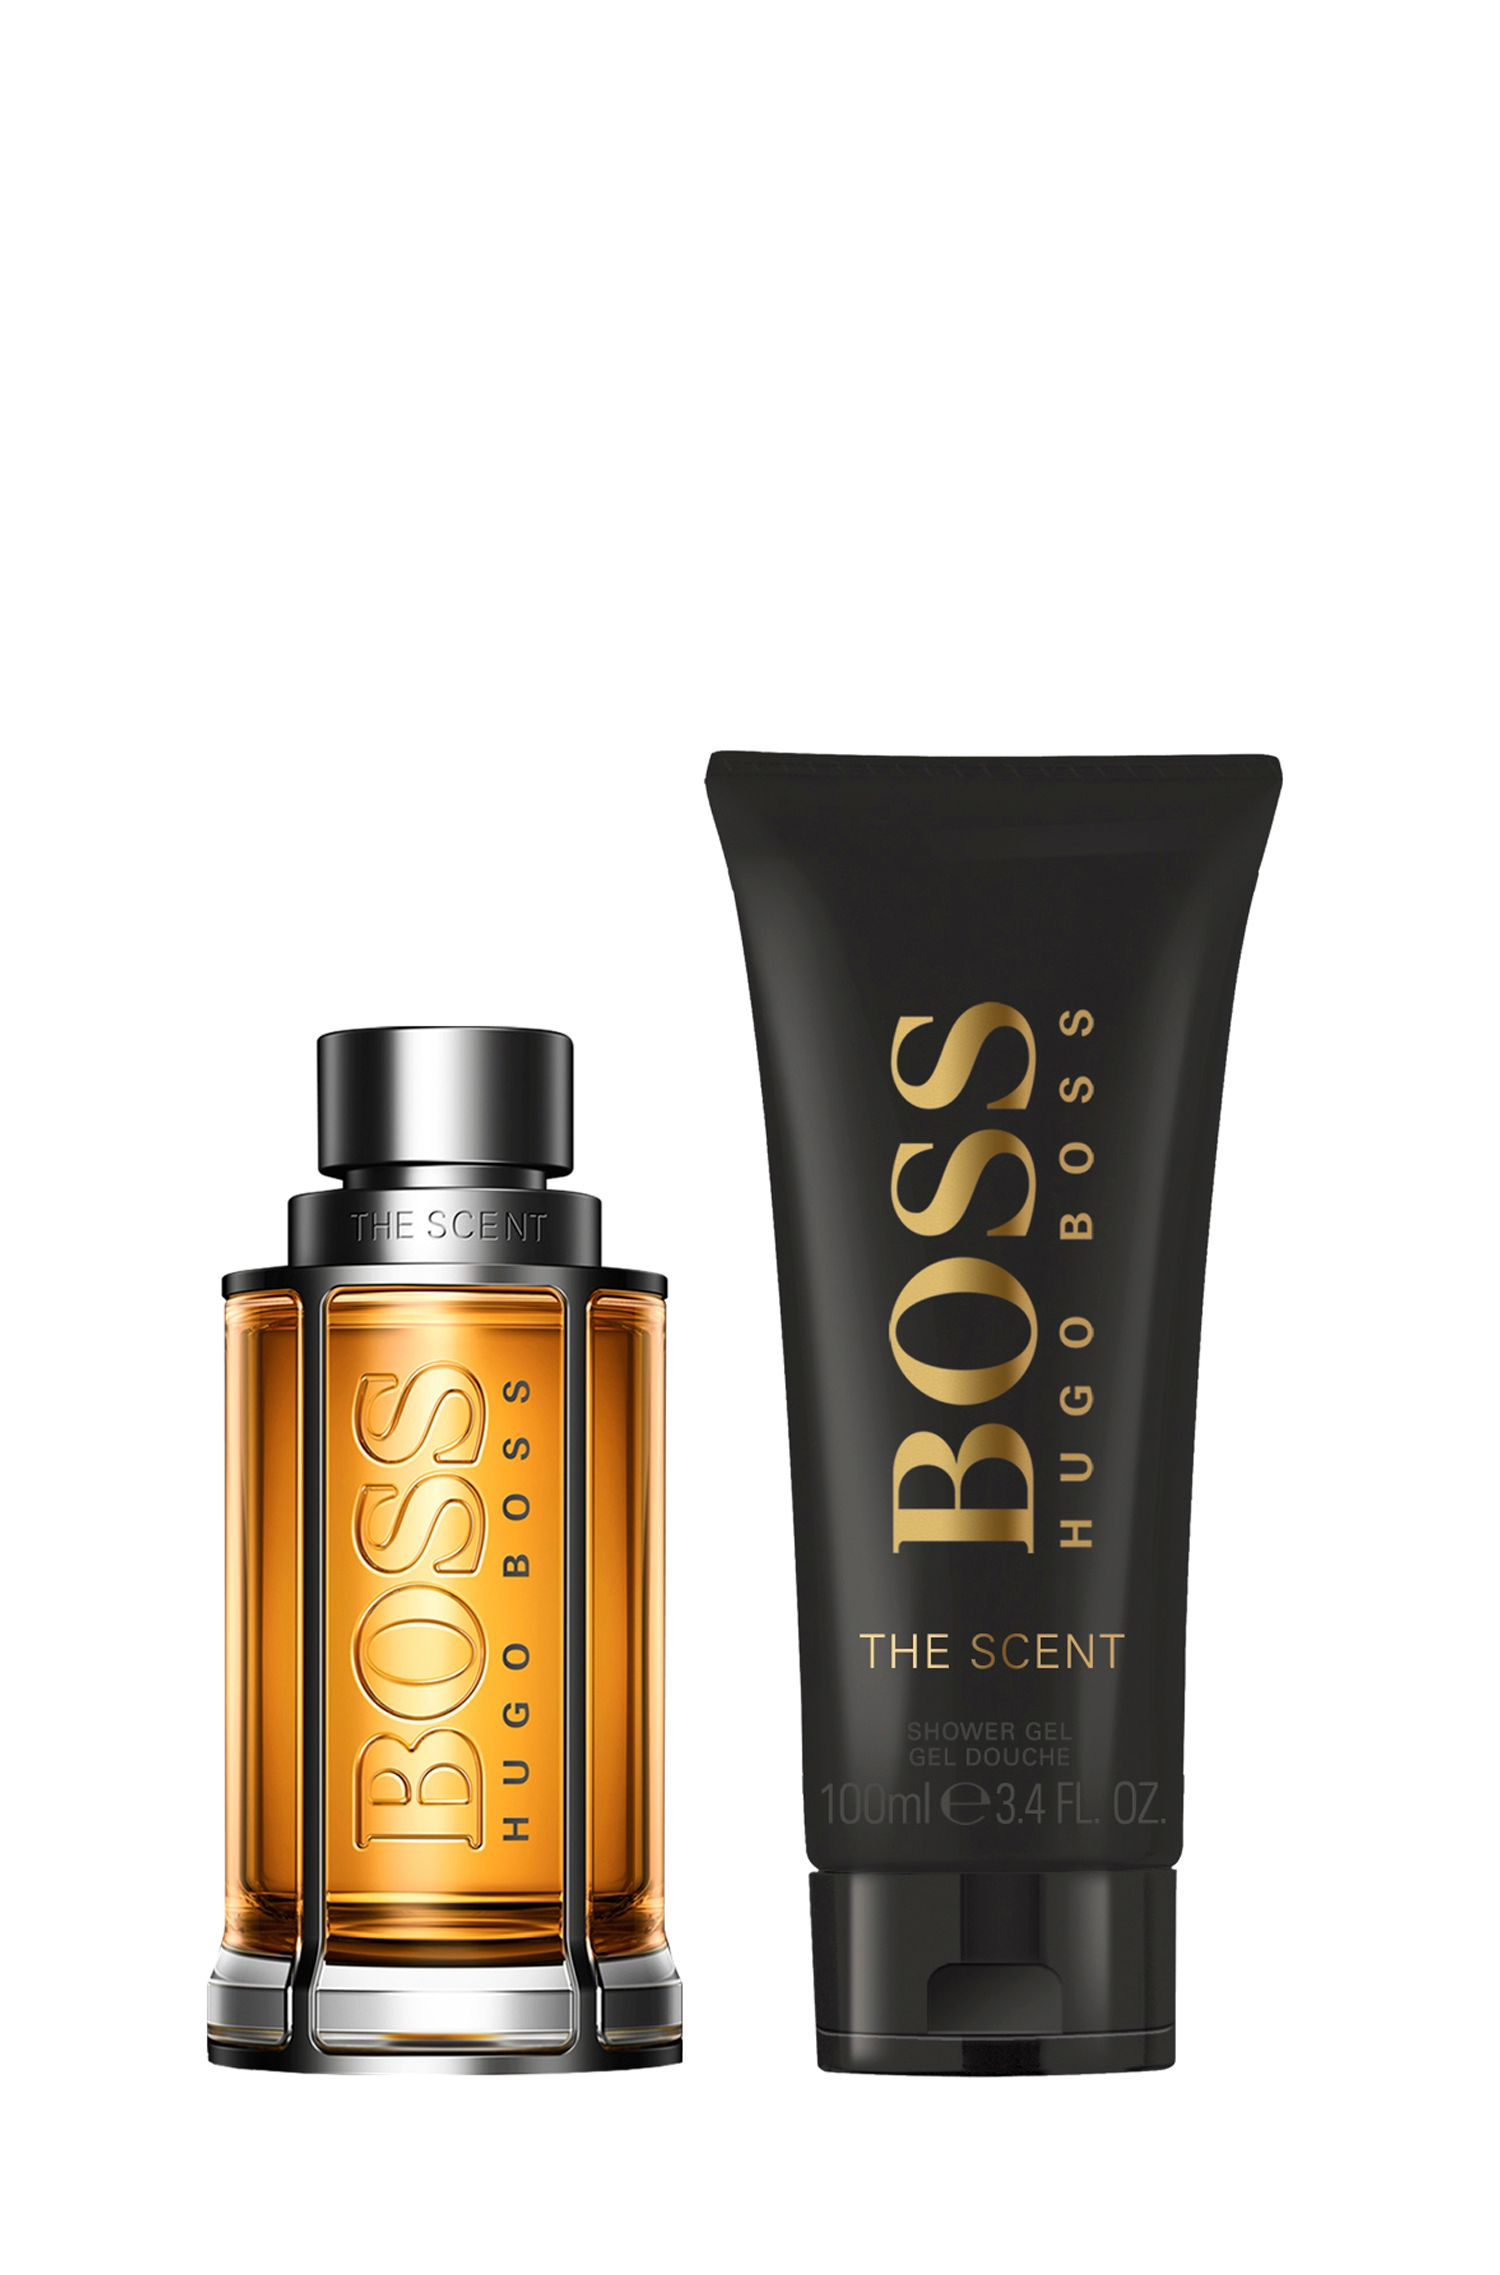 Coffret cadeau parfum et gel douche BOSS The Scent, Assorted-Pre-Pack